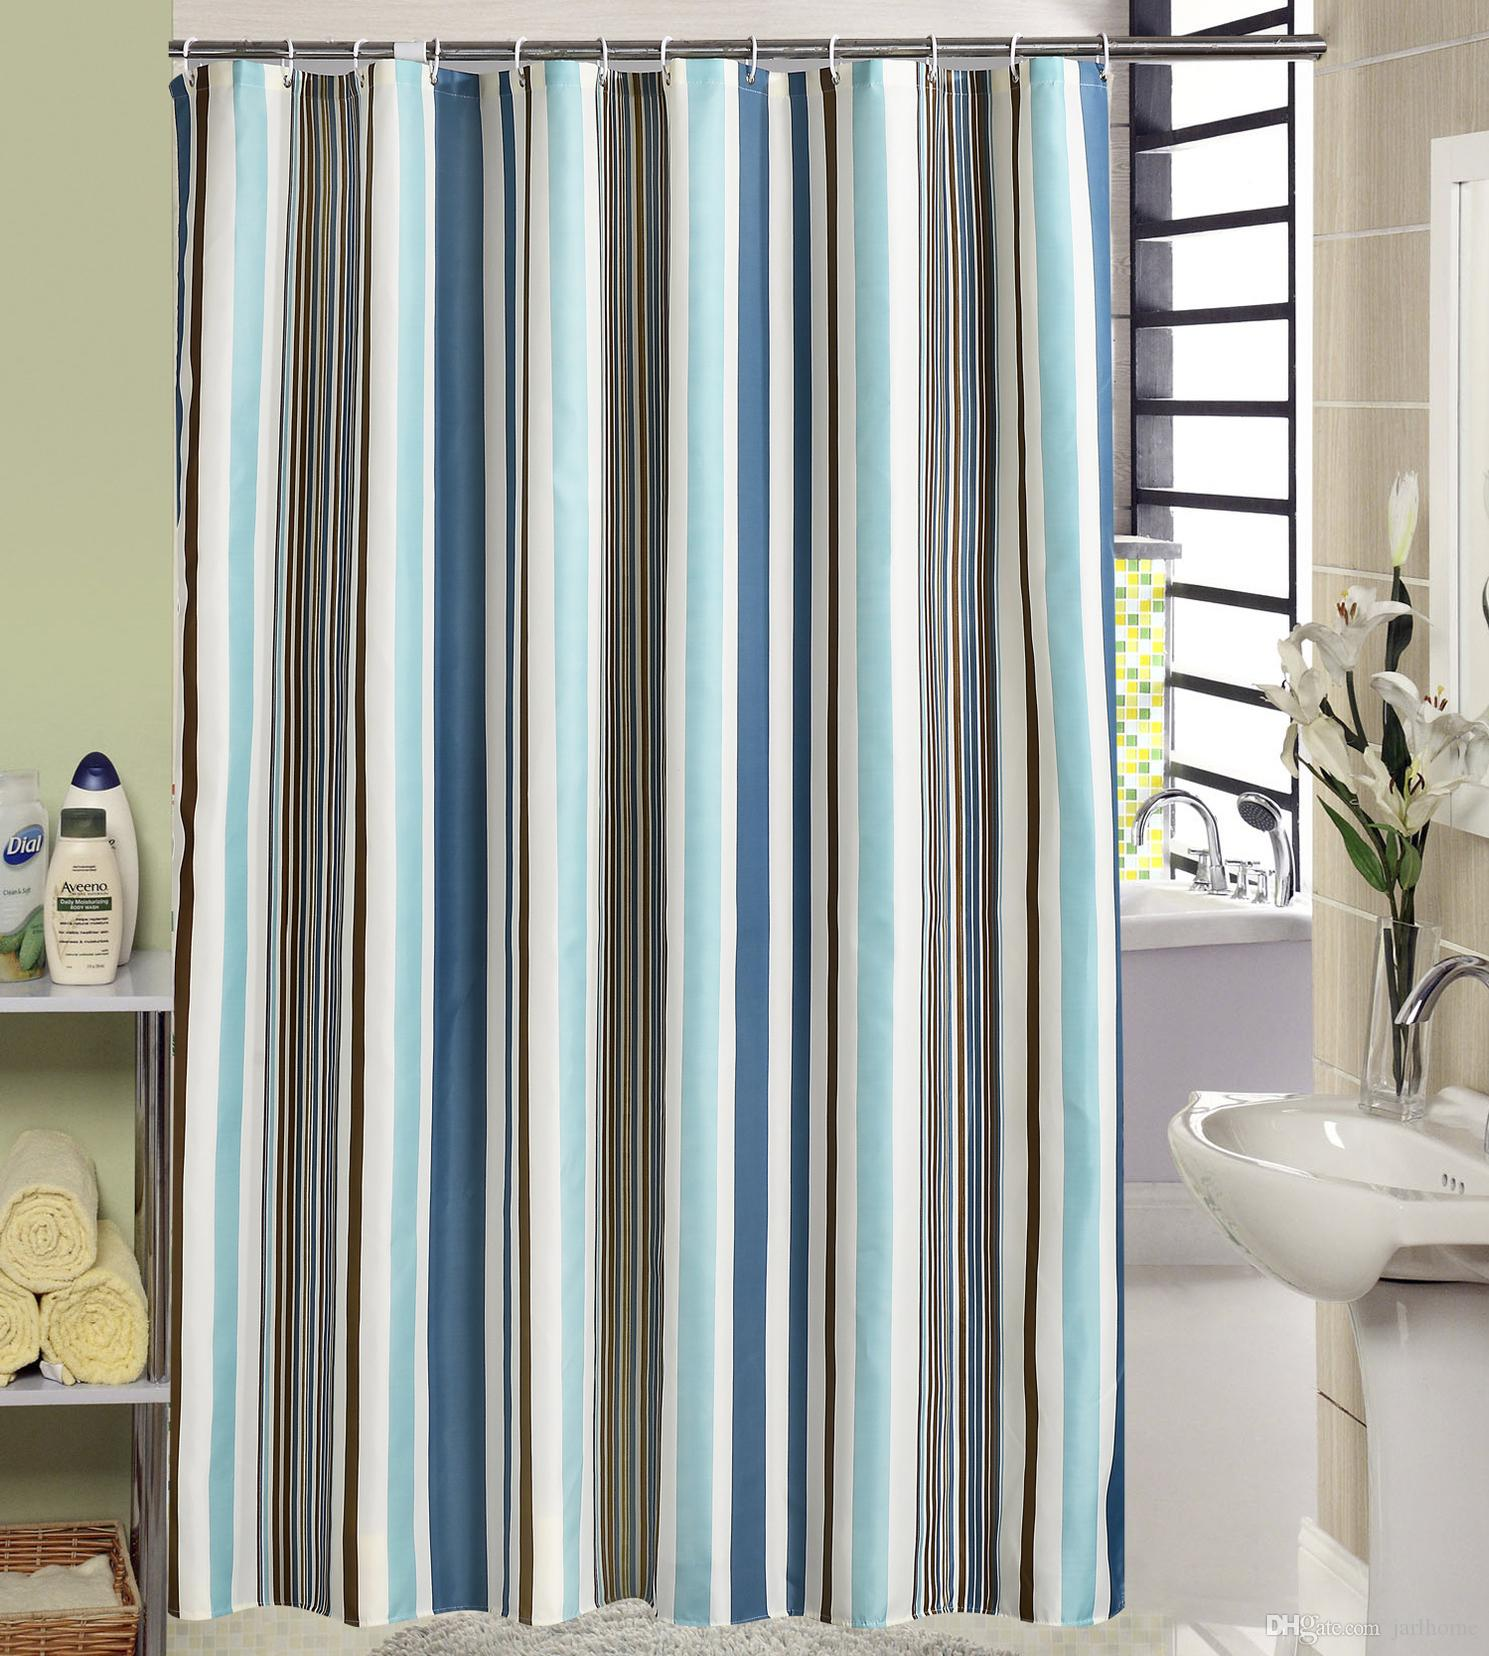 2019 Jarl Home Wholesale Blue White Striped Shower Curtains With Hooks Bathroom Waterproof Polyester Fabric Shower Curtain With Grommets From